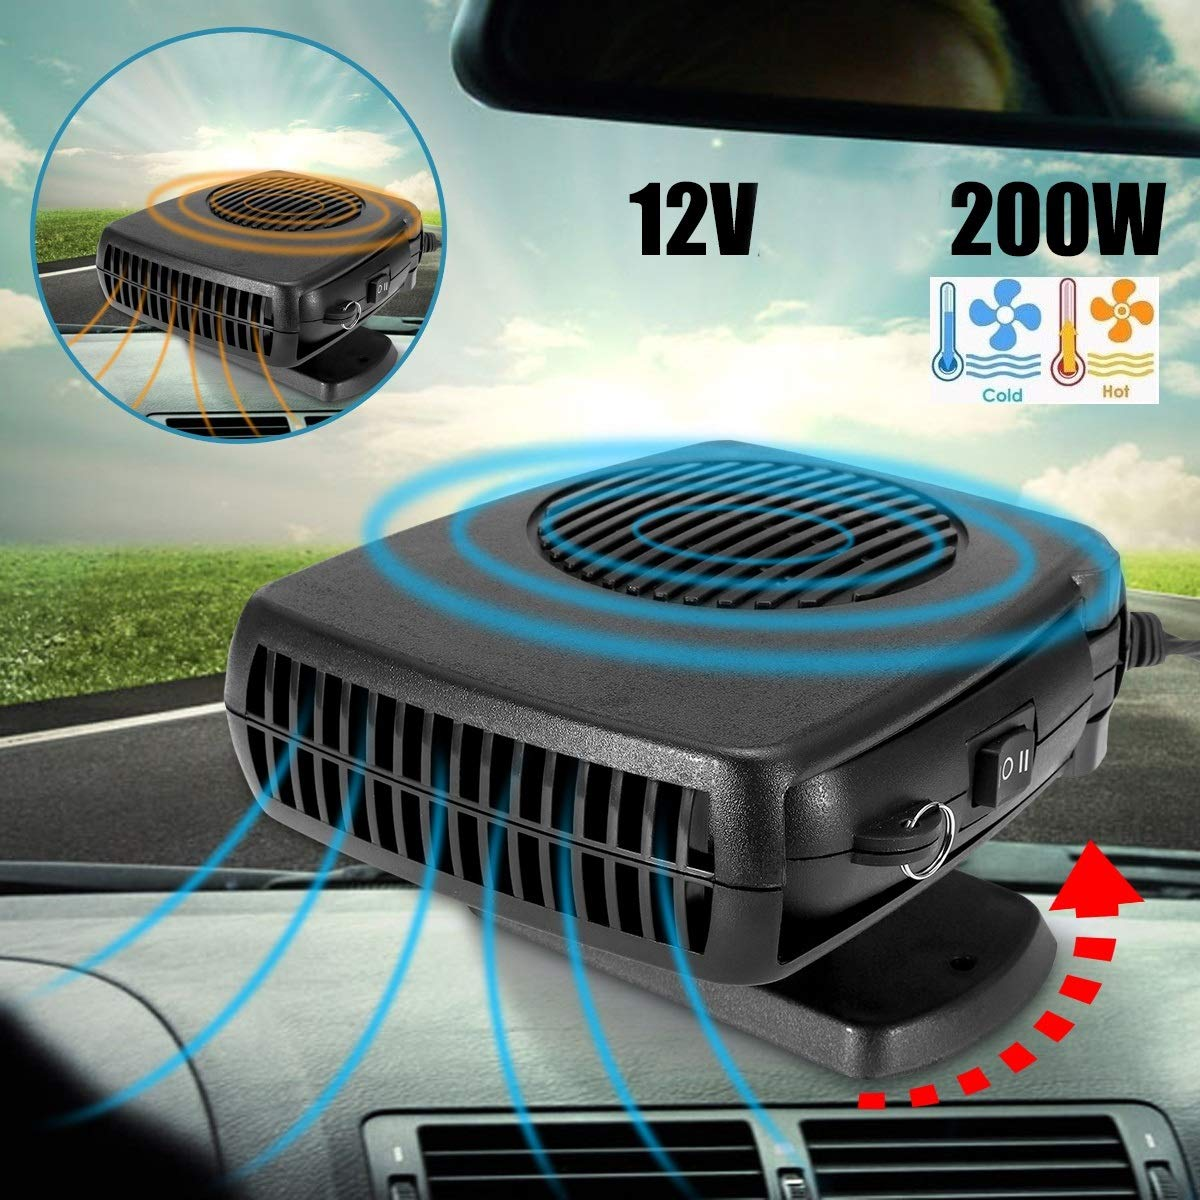 Wallfire Portable 12V 200W Car Windshield Demister Defroster 2 in 1 Heater & Cooler Fan RESDF1541